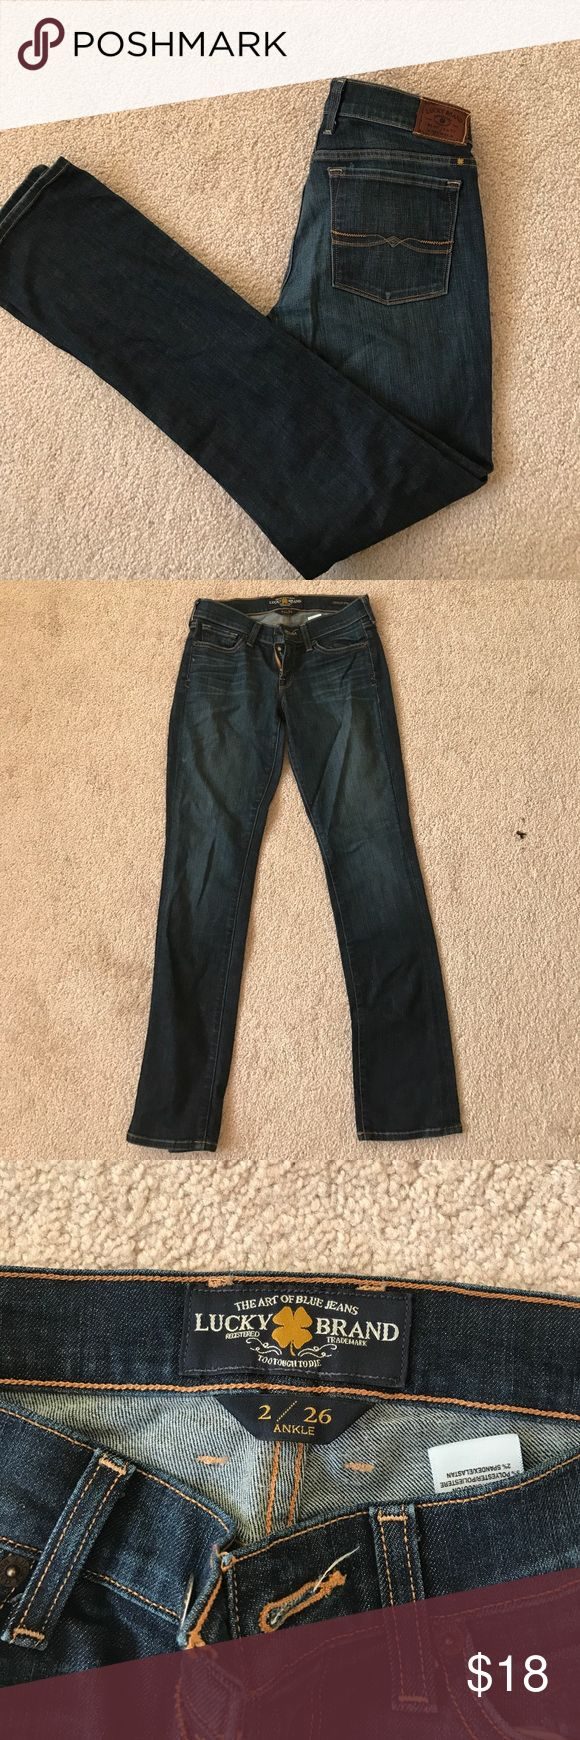 """Lucky brand straight cut jeans size 26 short Lucky brand straight cut jeans size 26 short """"Charlie straight"""". I am 5'2"""" and they are slightly too long. Great condition. Dark wash. Lucky Brand Pants Straight Leg"""